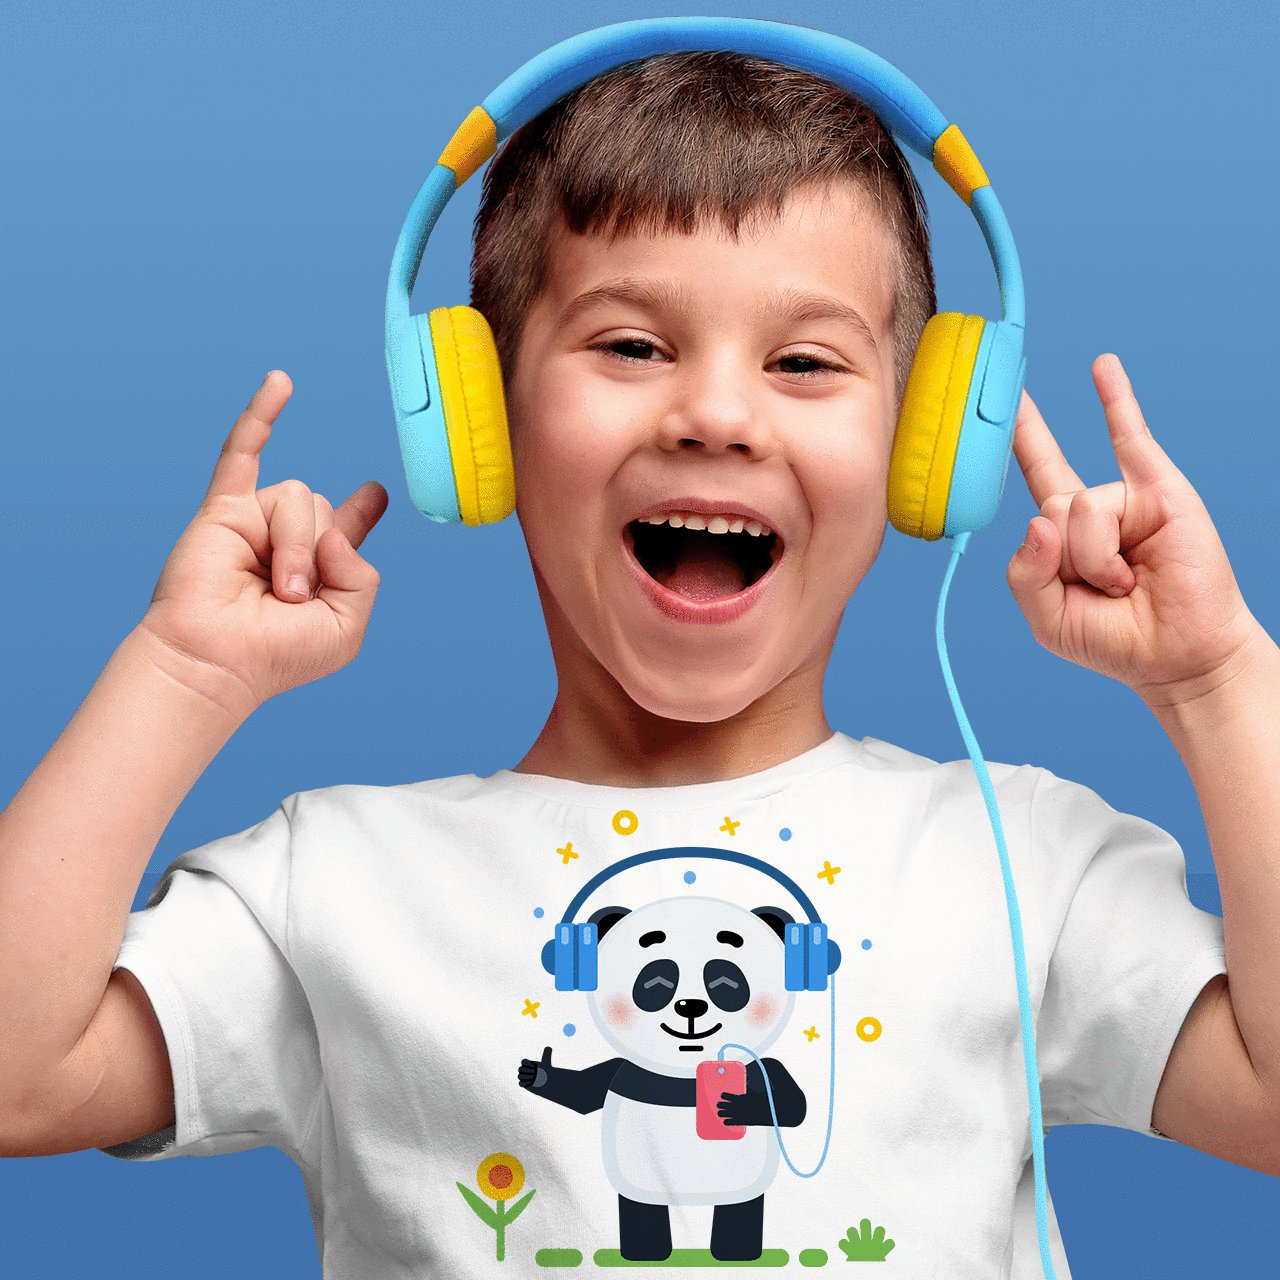 Mpow Kids Headphones with 85dB Volume Limited Hearing Protection & Music Sharing Function, Kids Friendly Safe Food Grade Material, Tangle-Free Cord, Wired On-Ear Headphones for Children Toddler Baby by Mpow (Image #6)